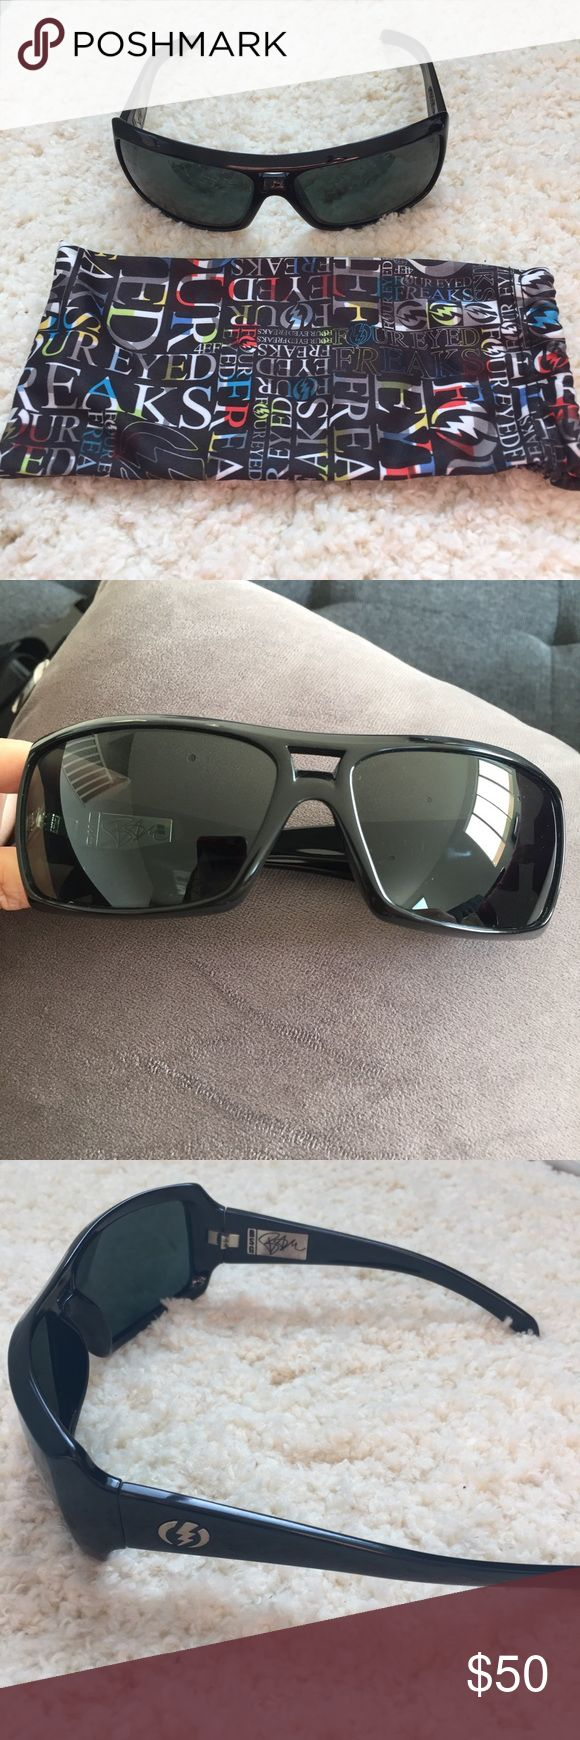 Polarized Electric sunglasses BSG Gently used, in good condition. Electric BSG sunglasses. Accessories Sunglasses